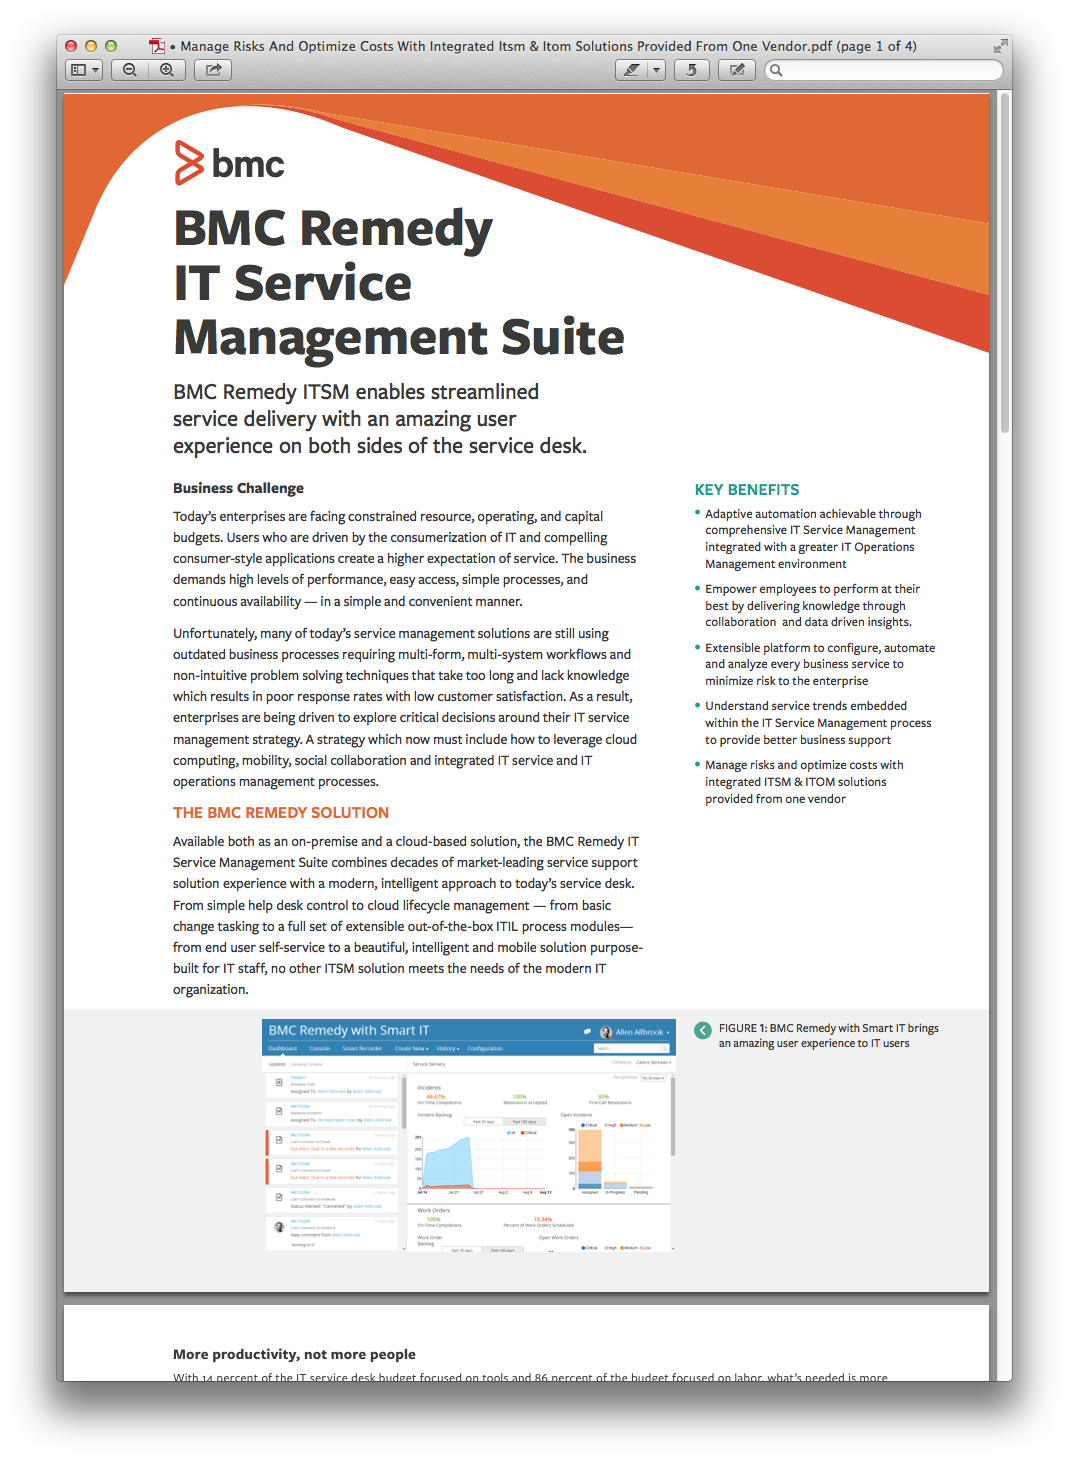 Manage Risks And Optimize Costs With Integrated Itsm Itom Solutions Provided From One Vendor.pdf.png (1069×1460)